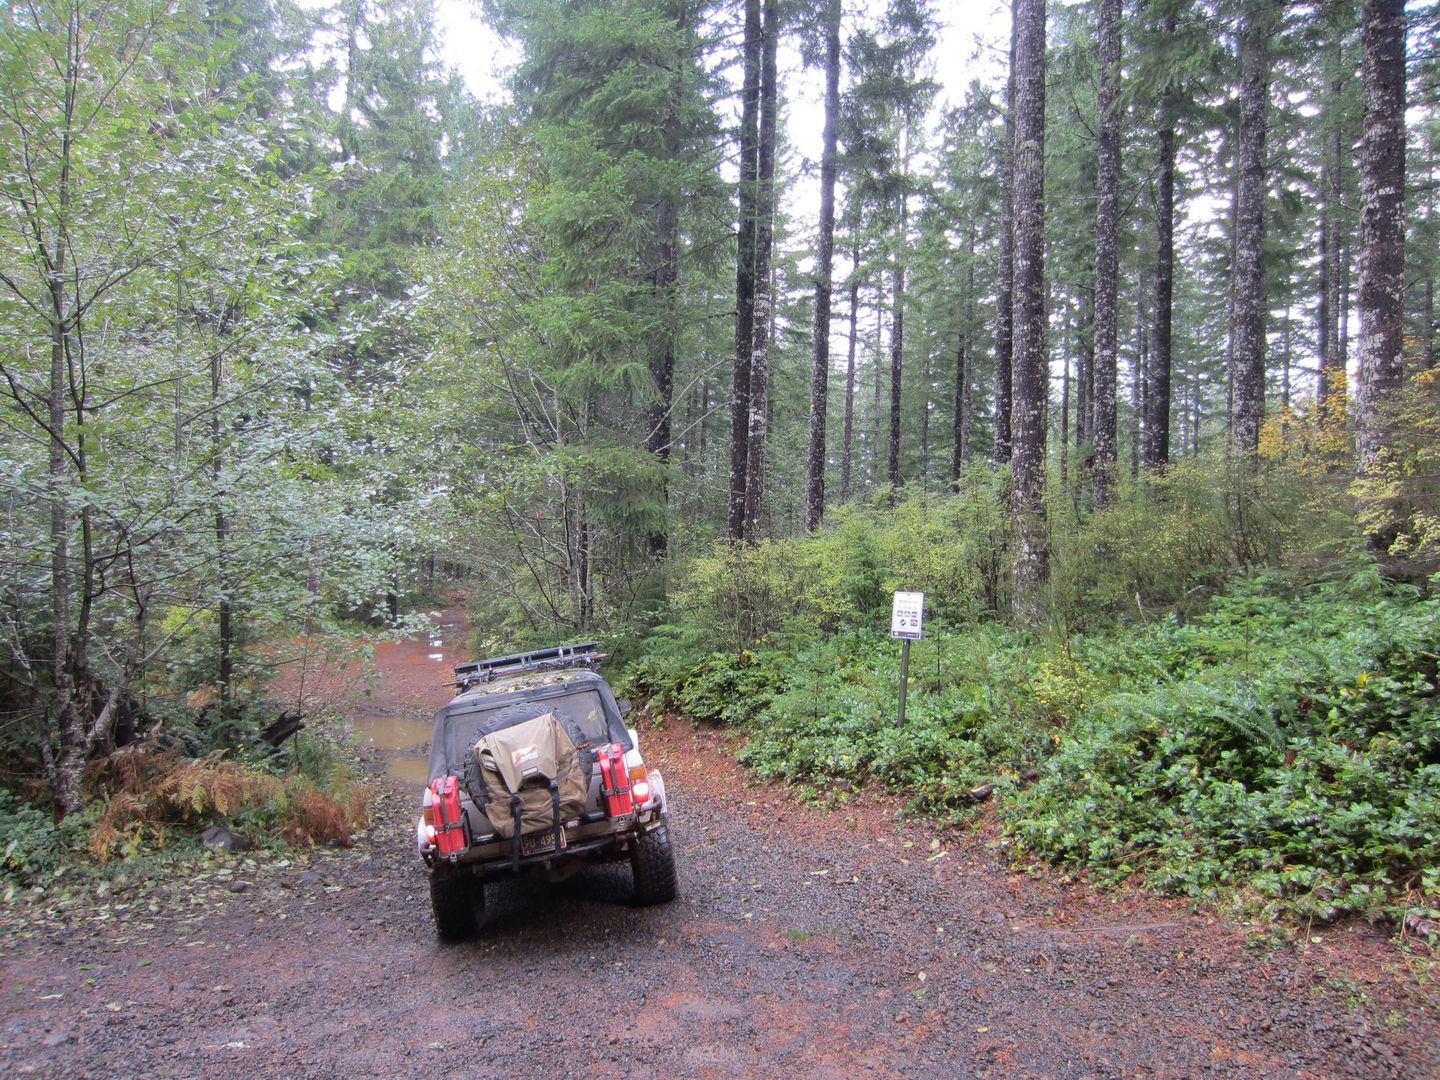 Firebreak Five / Tillamook State Forest - Waypoint 1: Trailhead